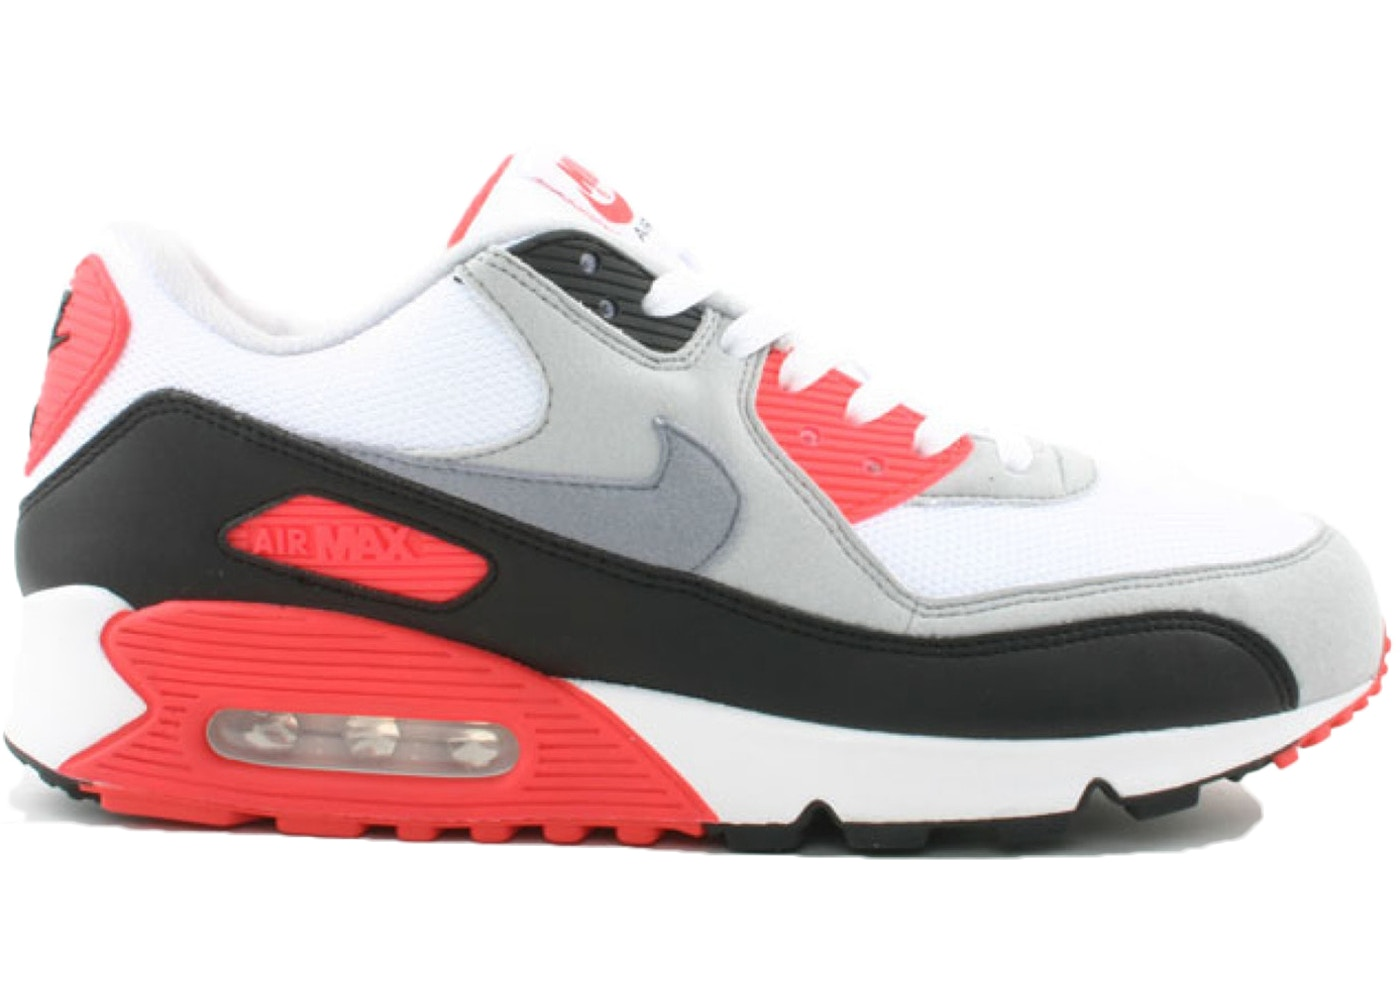 taille 40 31a8c d2a33 Air Max 90 Infrared (2008)